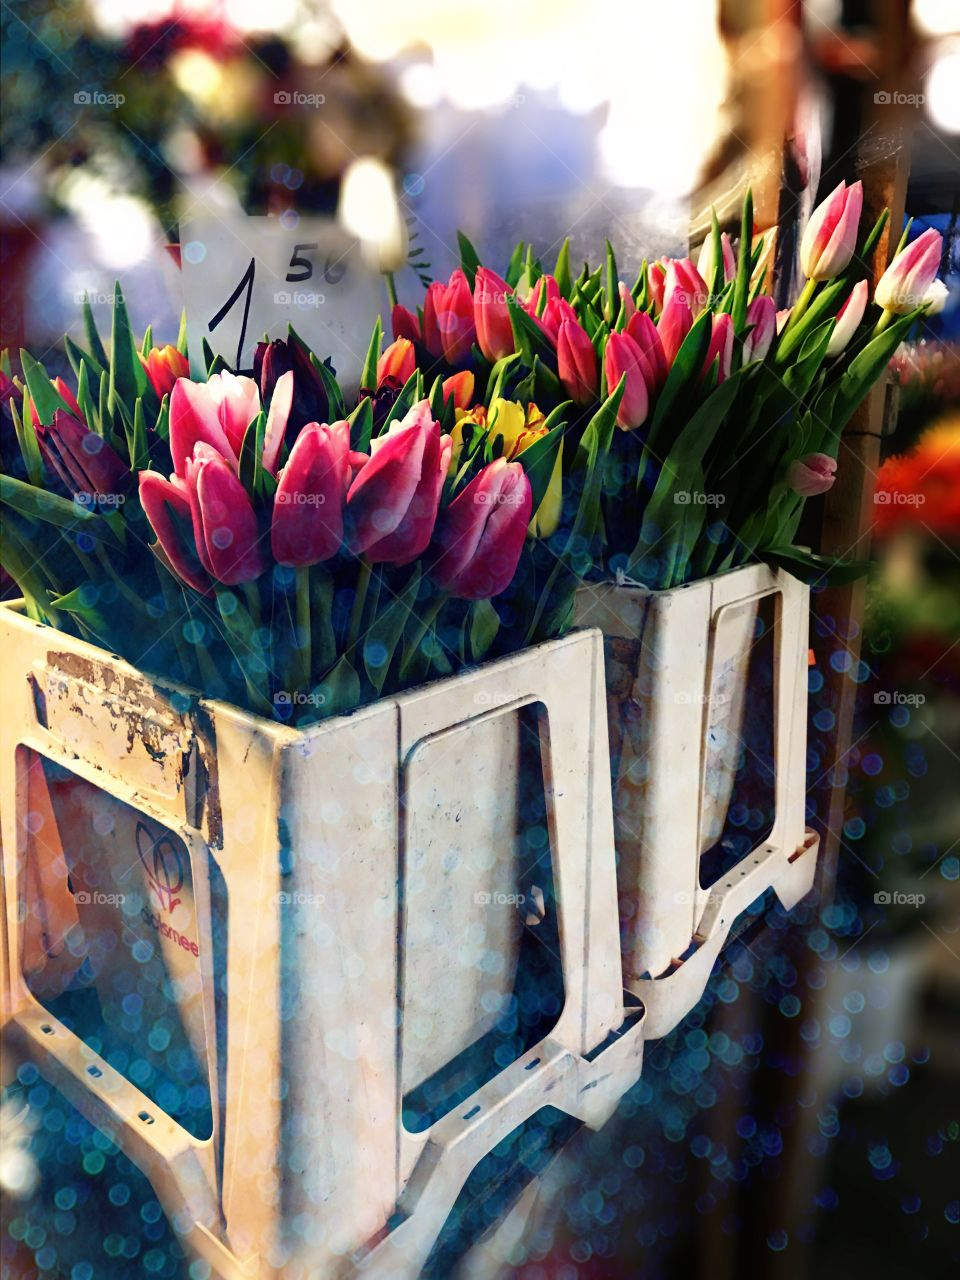 Tulip flowers in market for sale